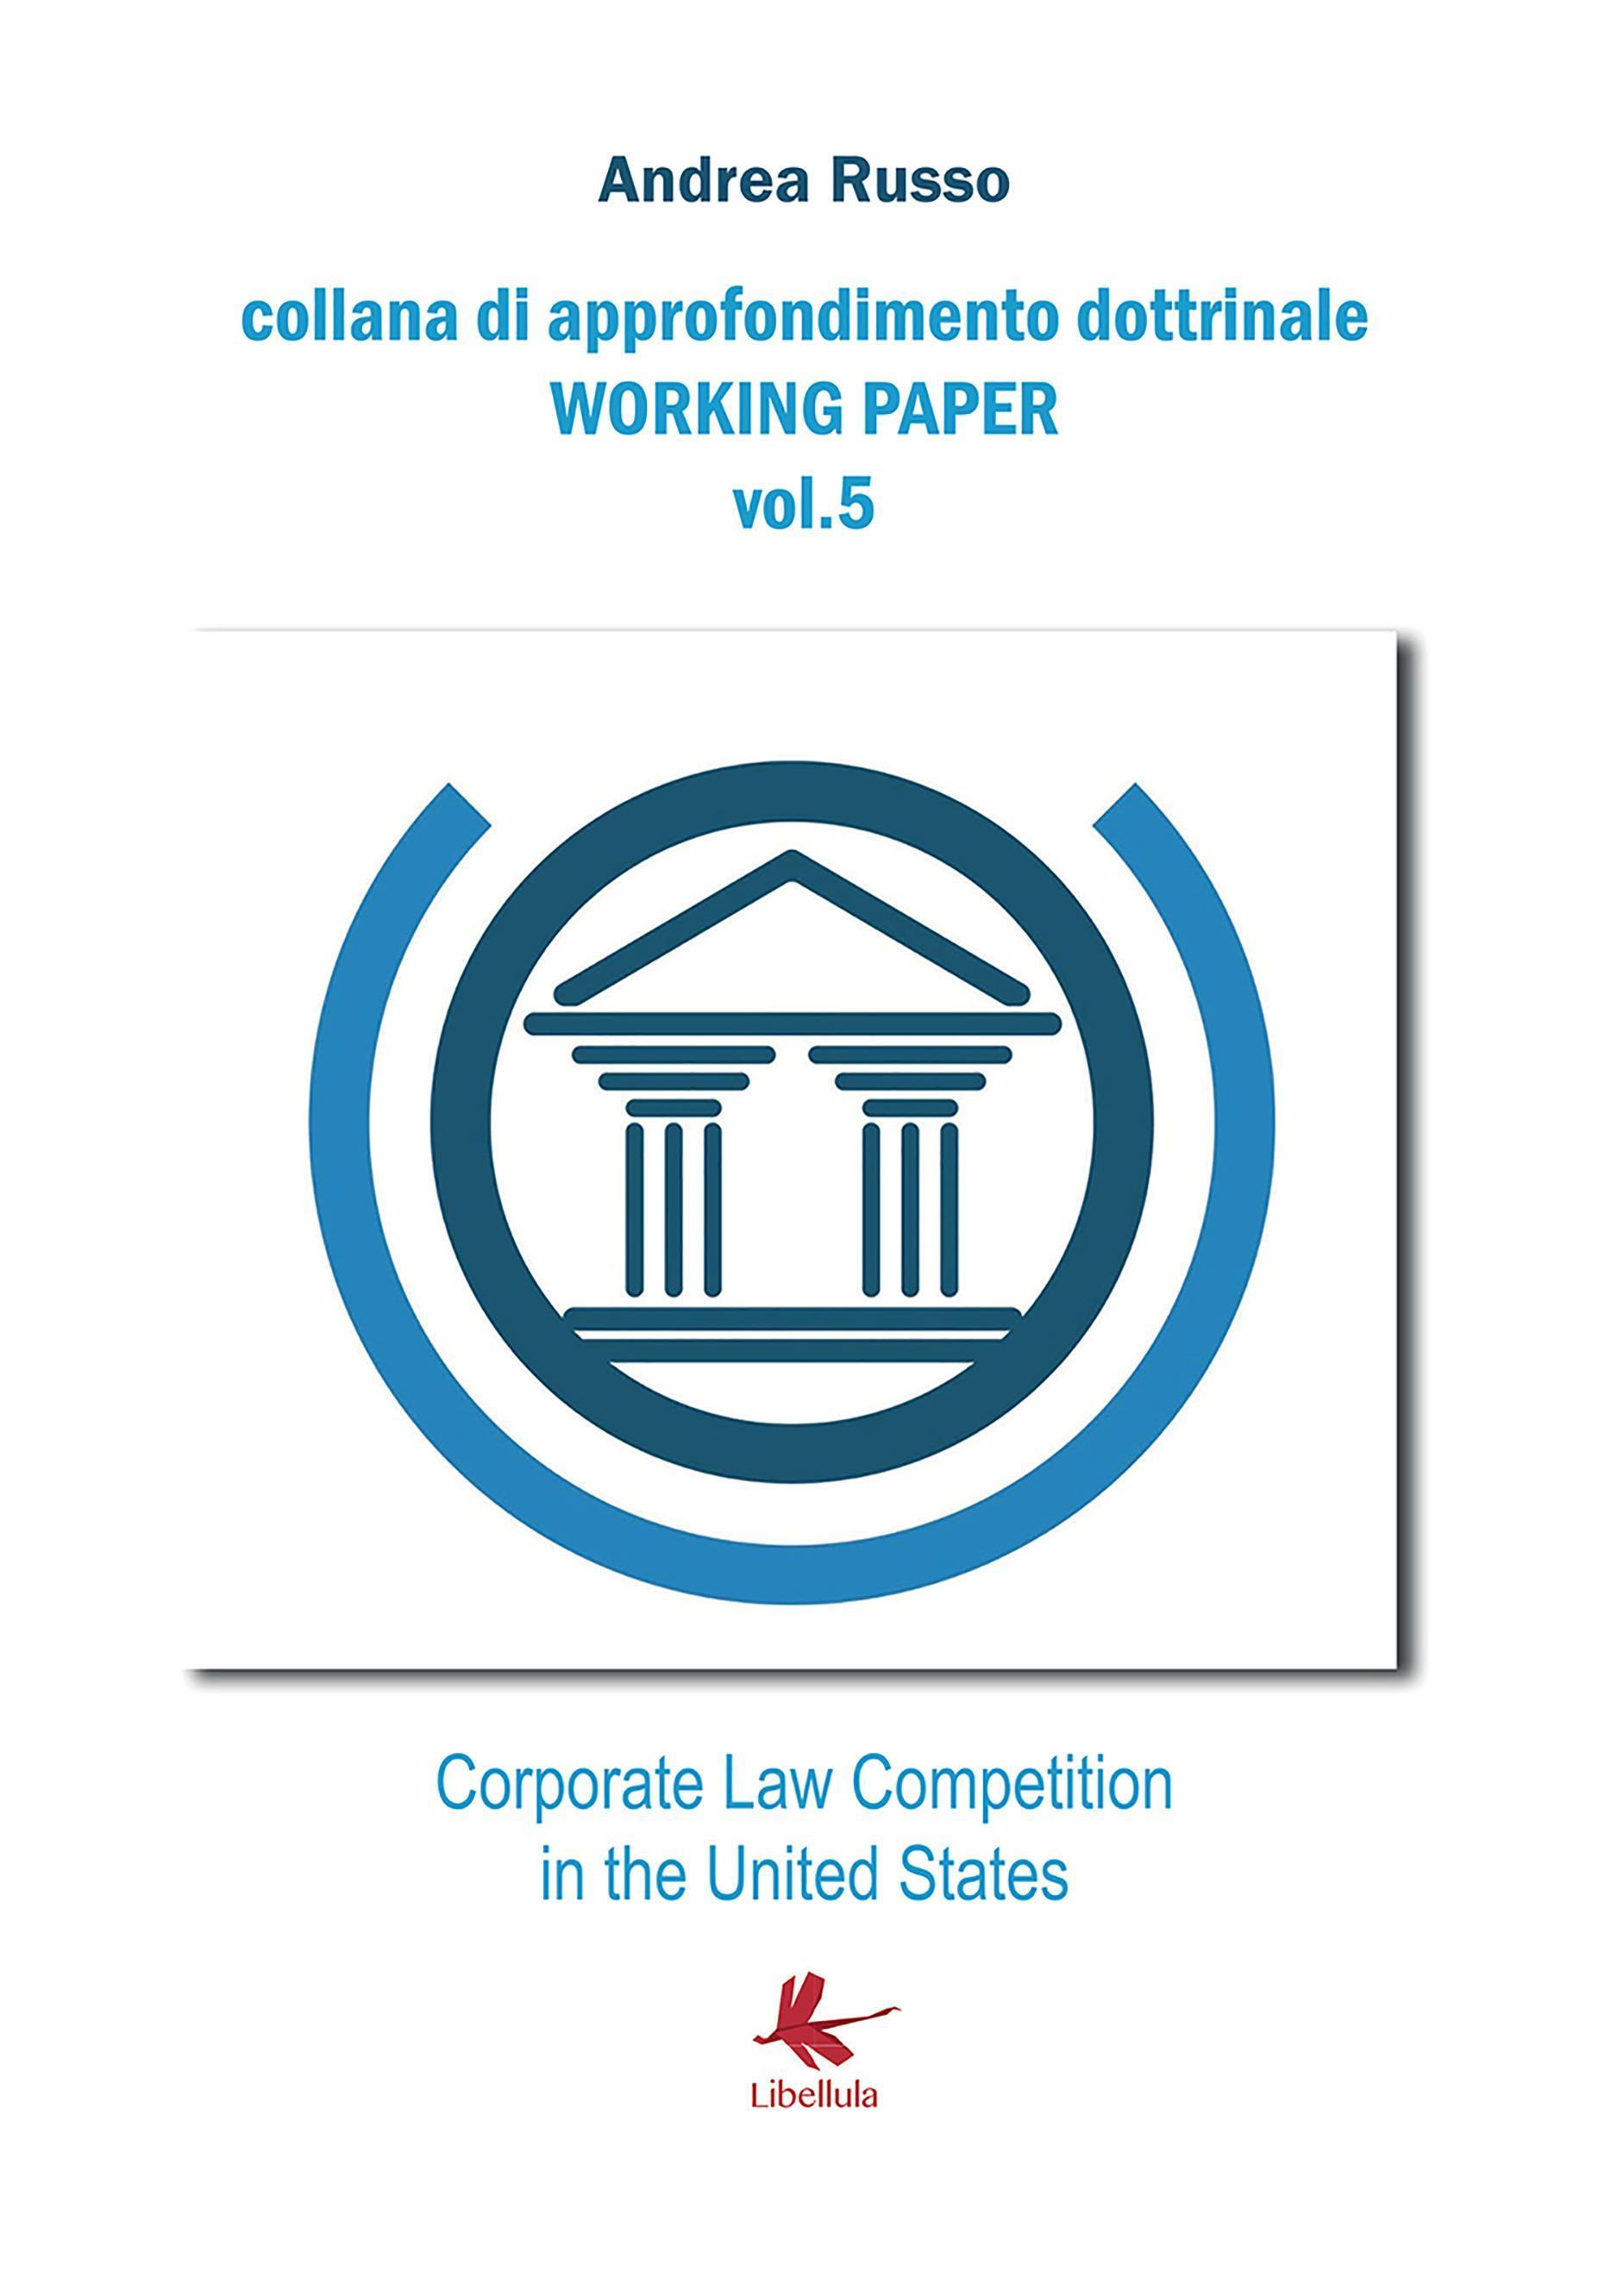 Corporate Law Competition in the United States